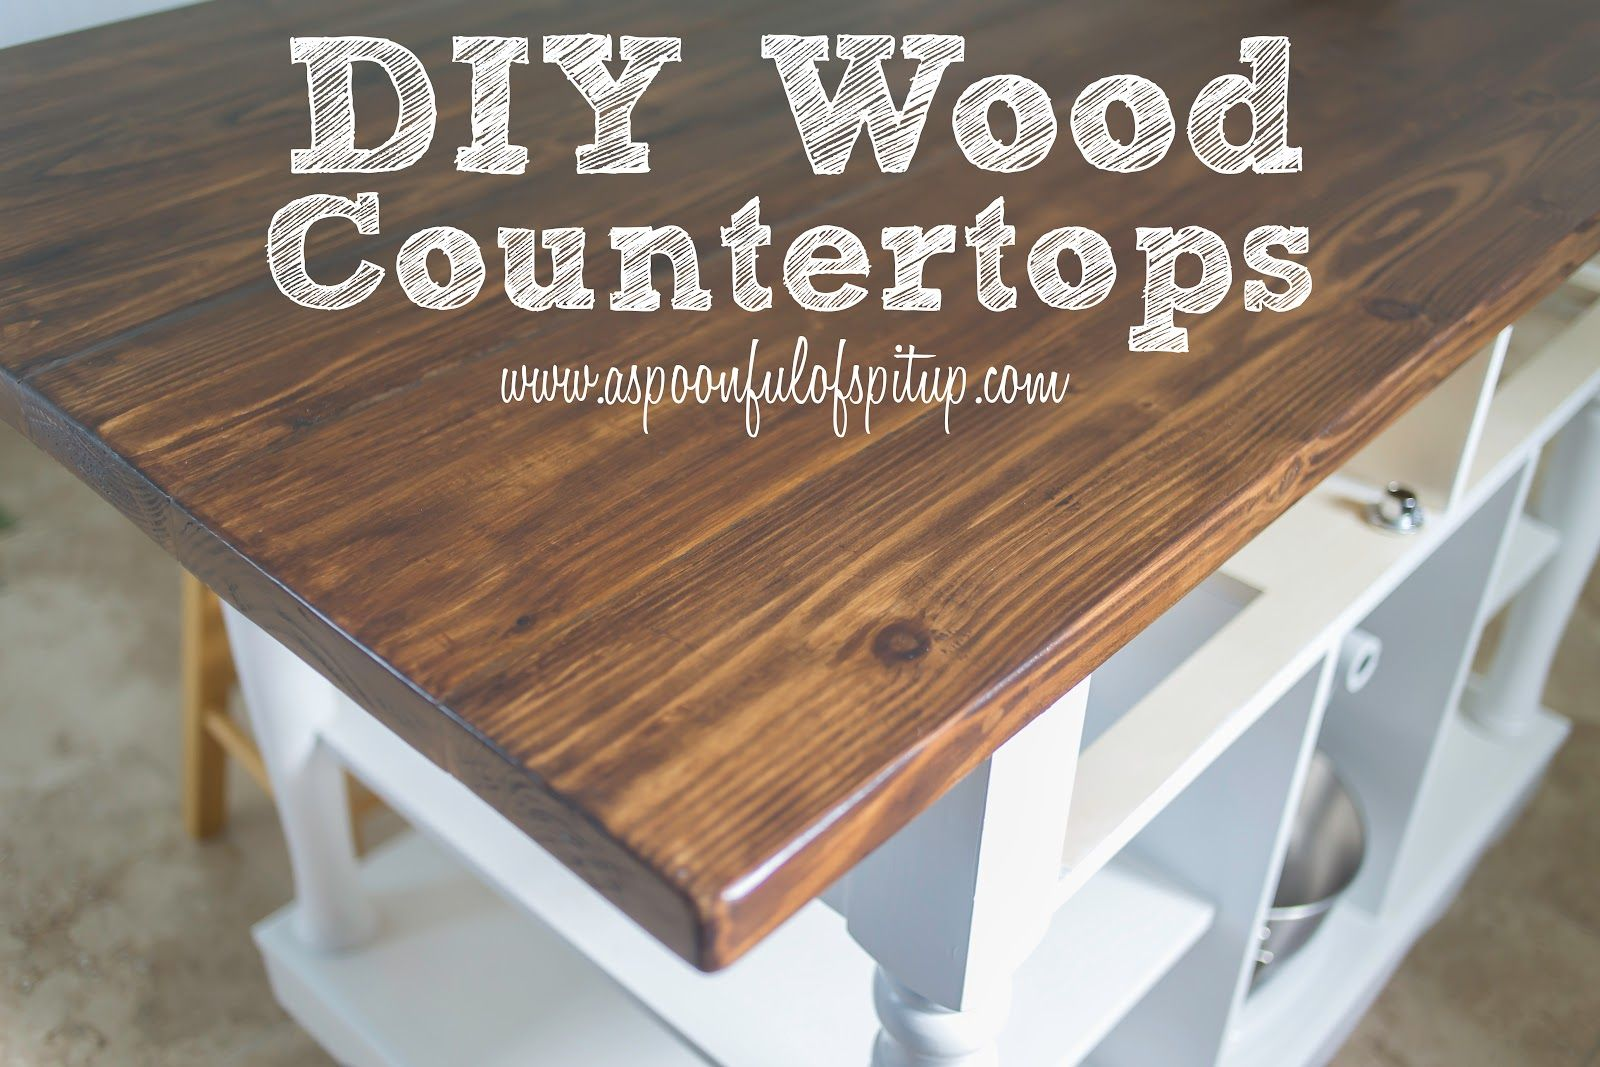 Uncategorized Diy Wood Kitchen Countertops a spoonful of spit up diy wood butcher block countertops charming for kitchen furniture inspiration countertops